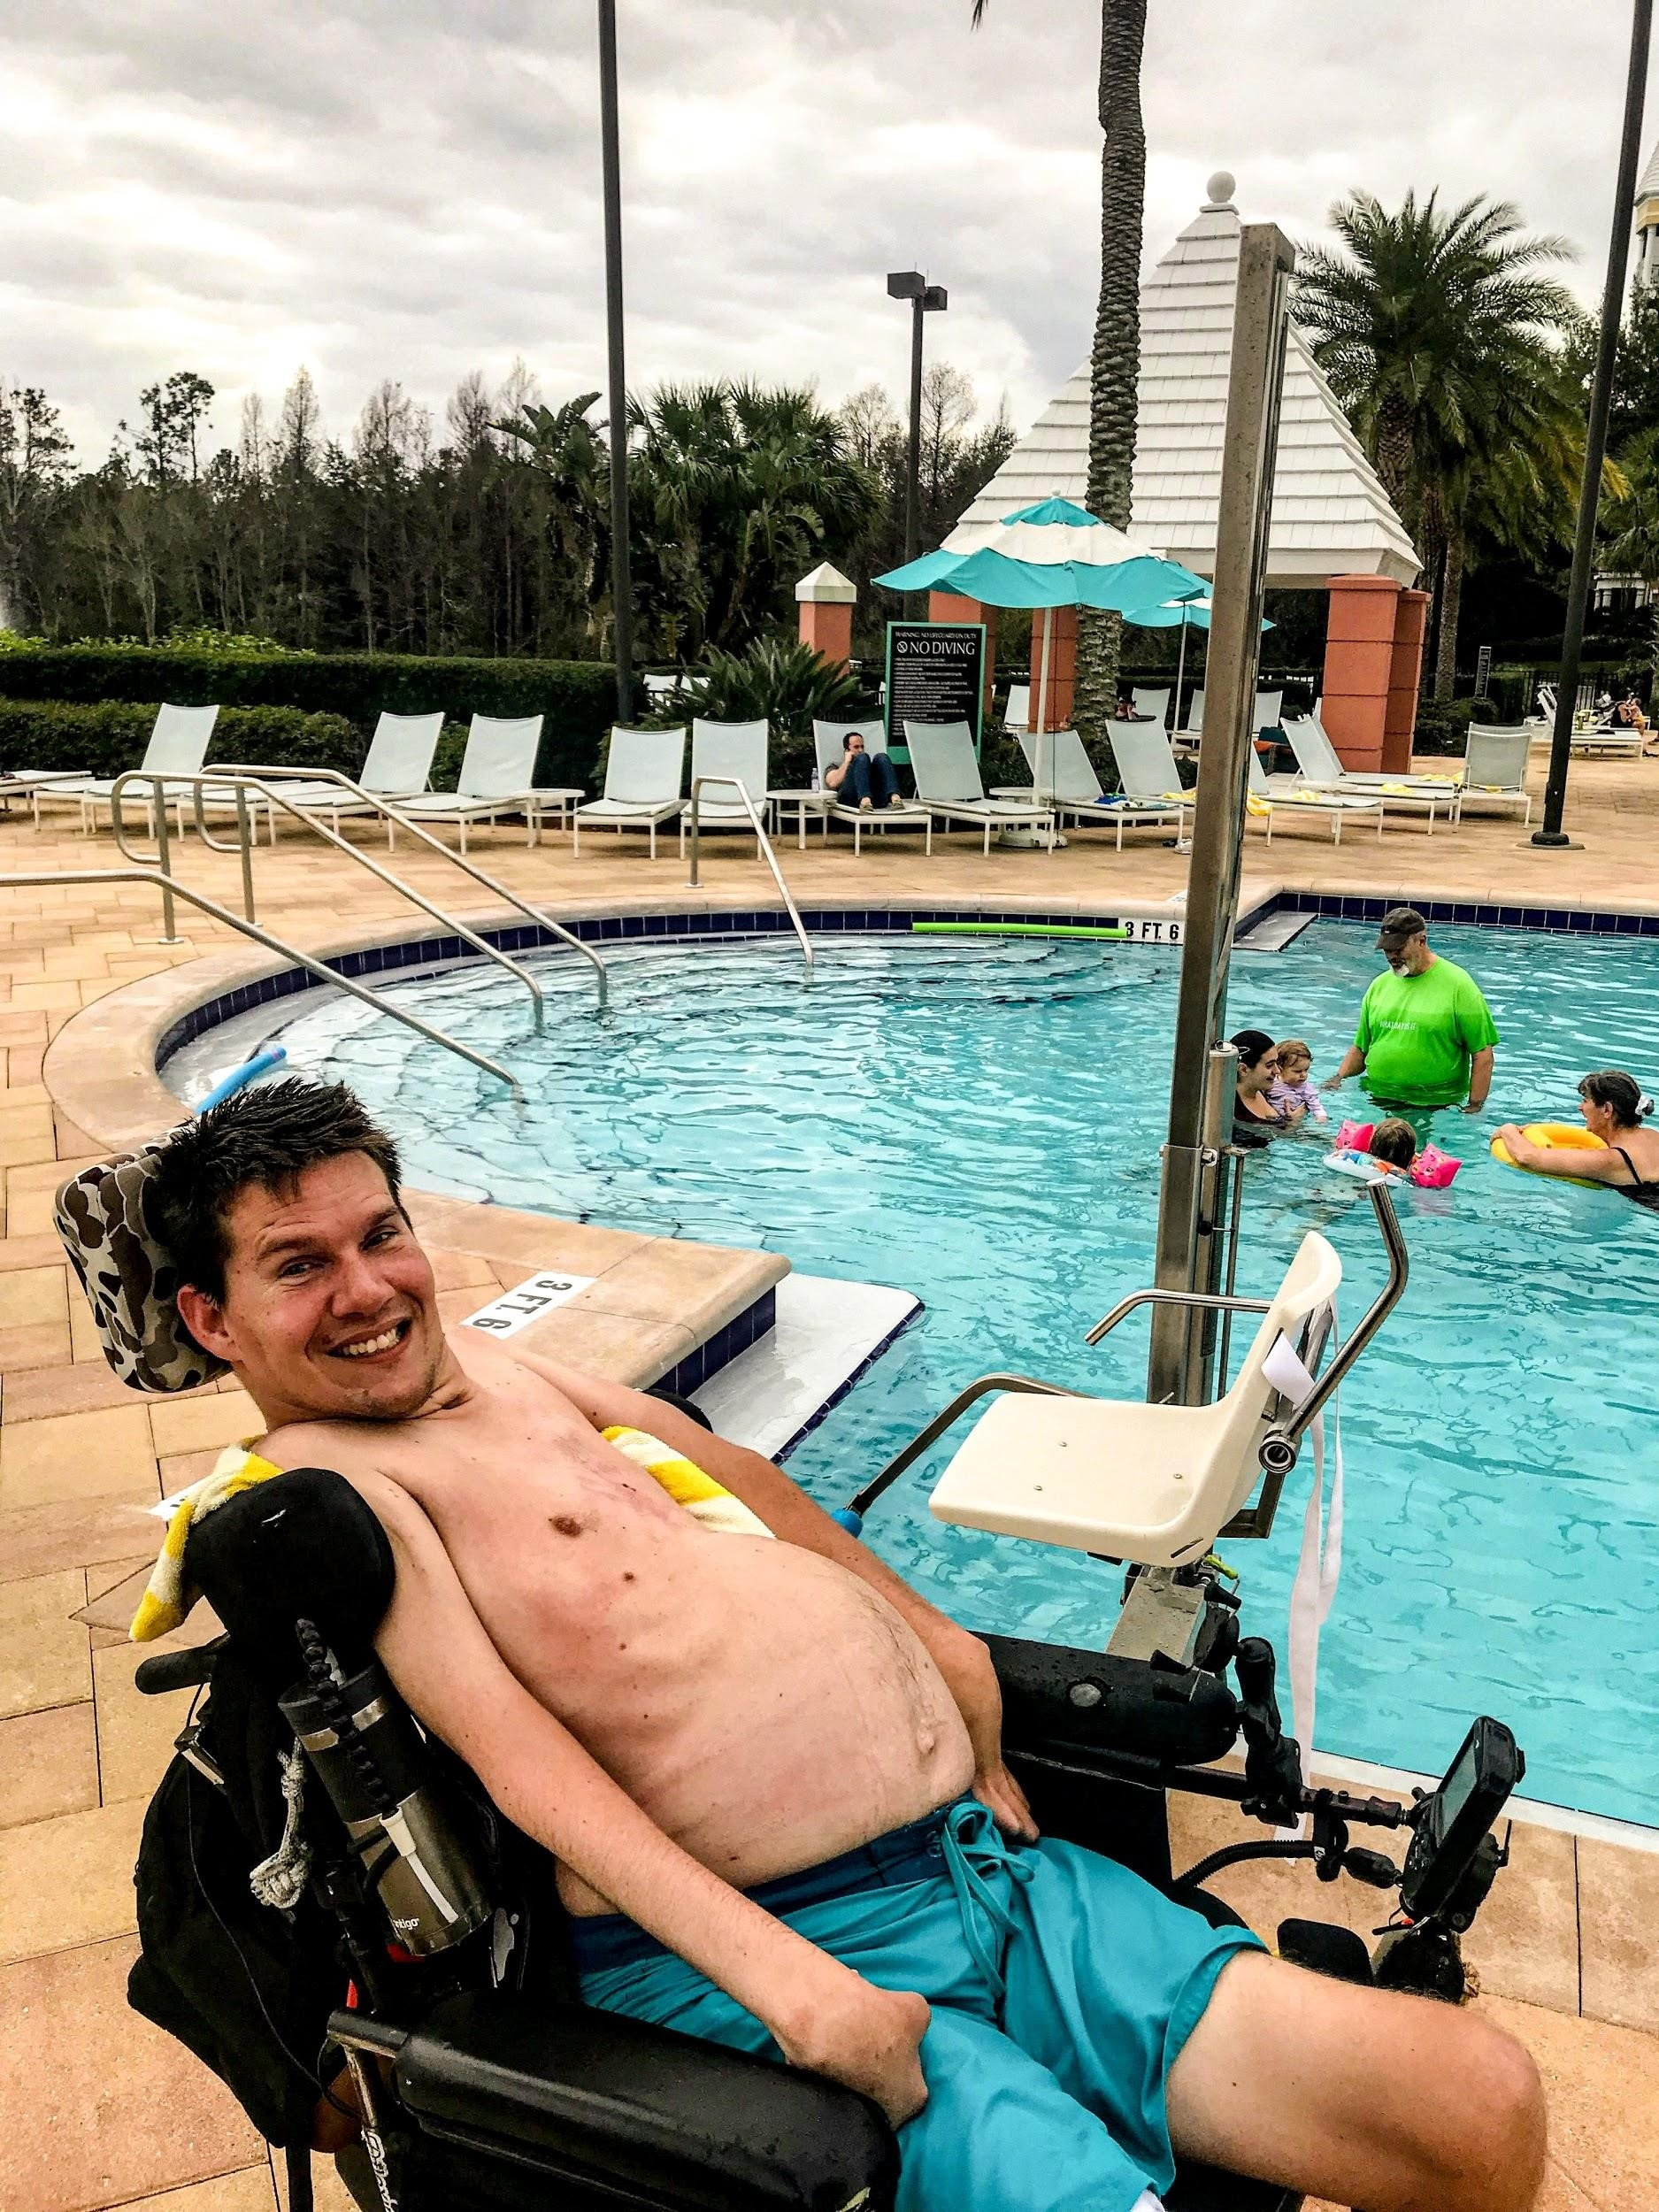 A Hilton Grand Vacations Owner in a wheel chair excited about the handicap pool lifts at the Hilton Grand Vacations at SeaWorld resort pool.